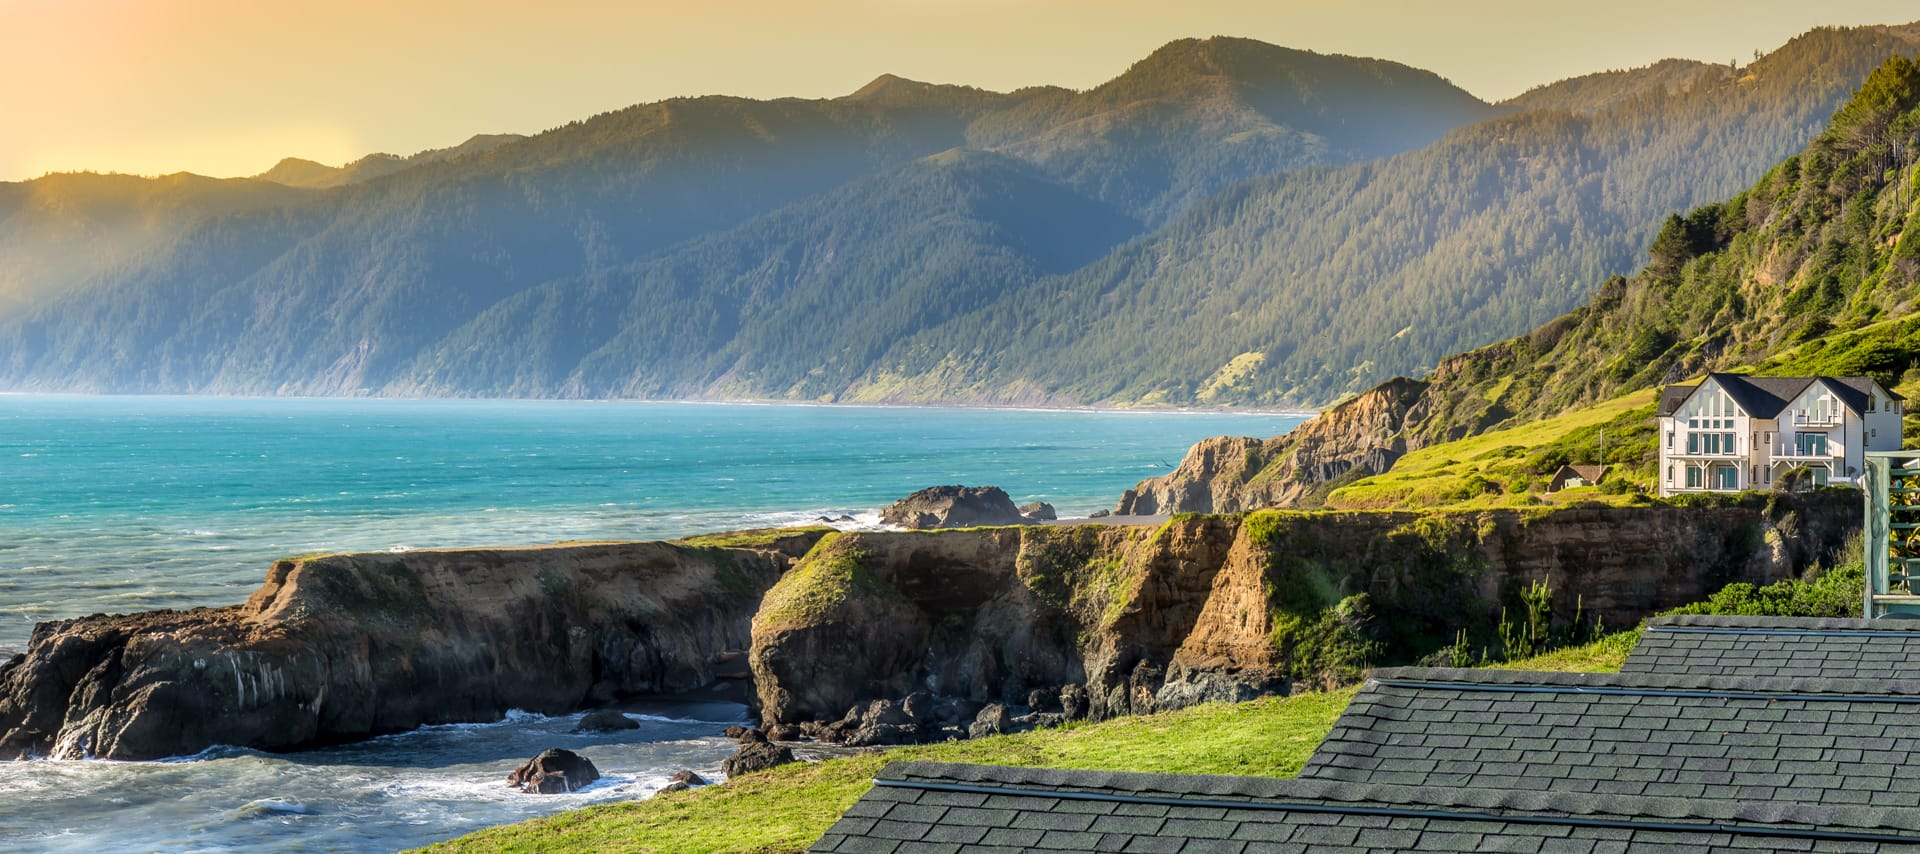 Shelter Cove California Coastline from Deluxe Corner Suite hotel room at the oceanfront Inn of the Lost Coast Shelter Cove, near the Lost Coast Trail.